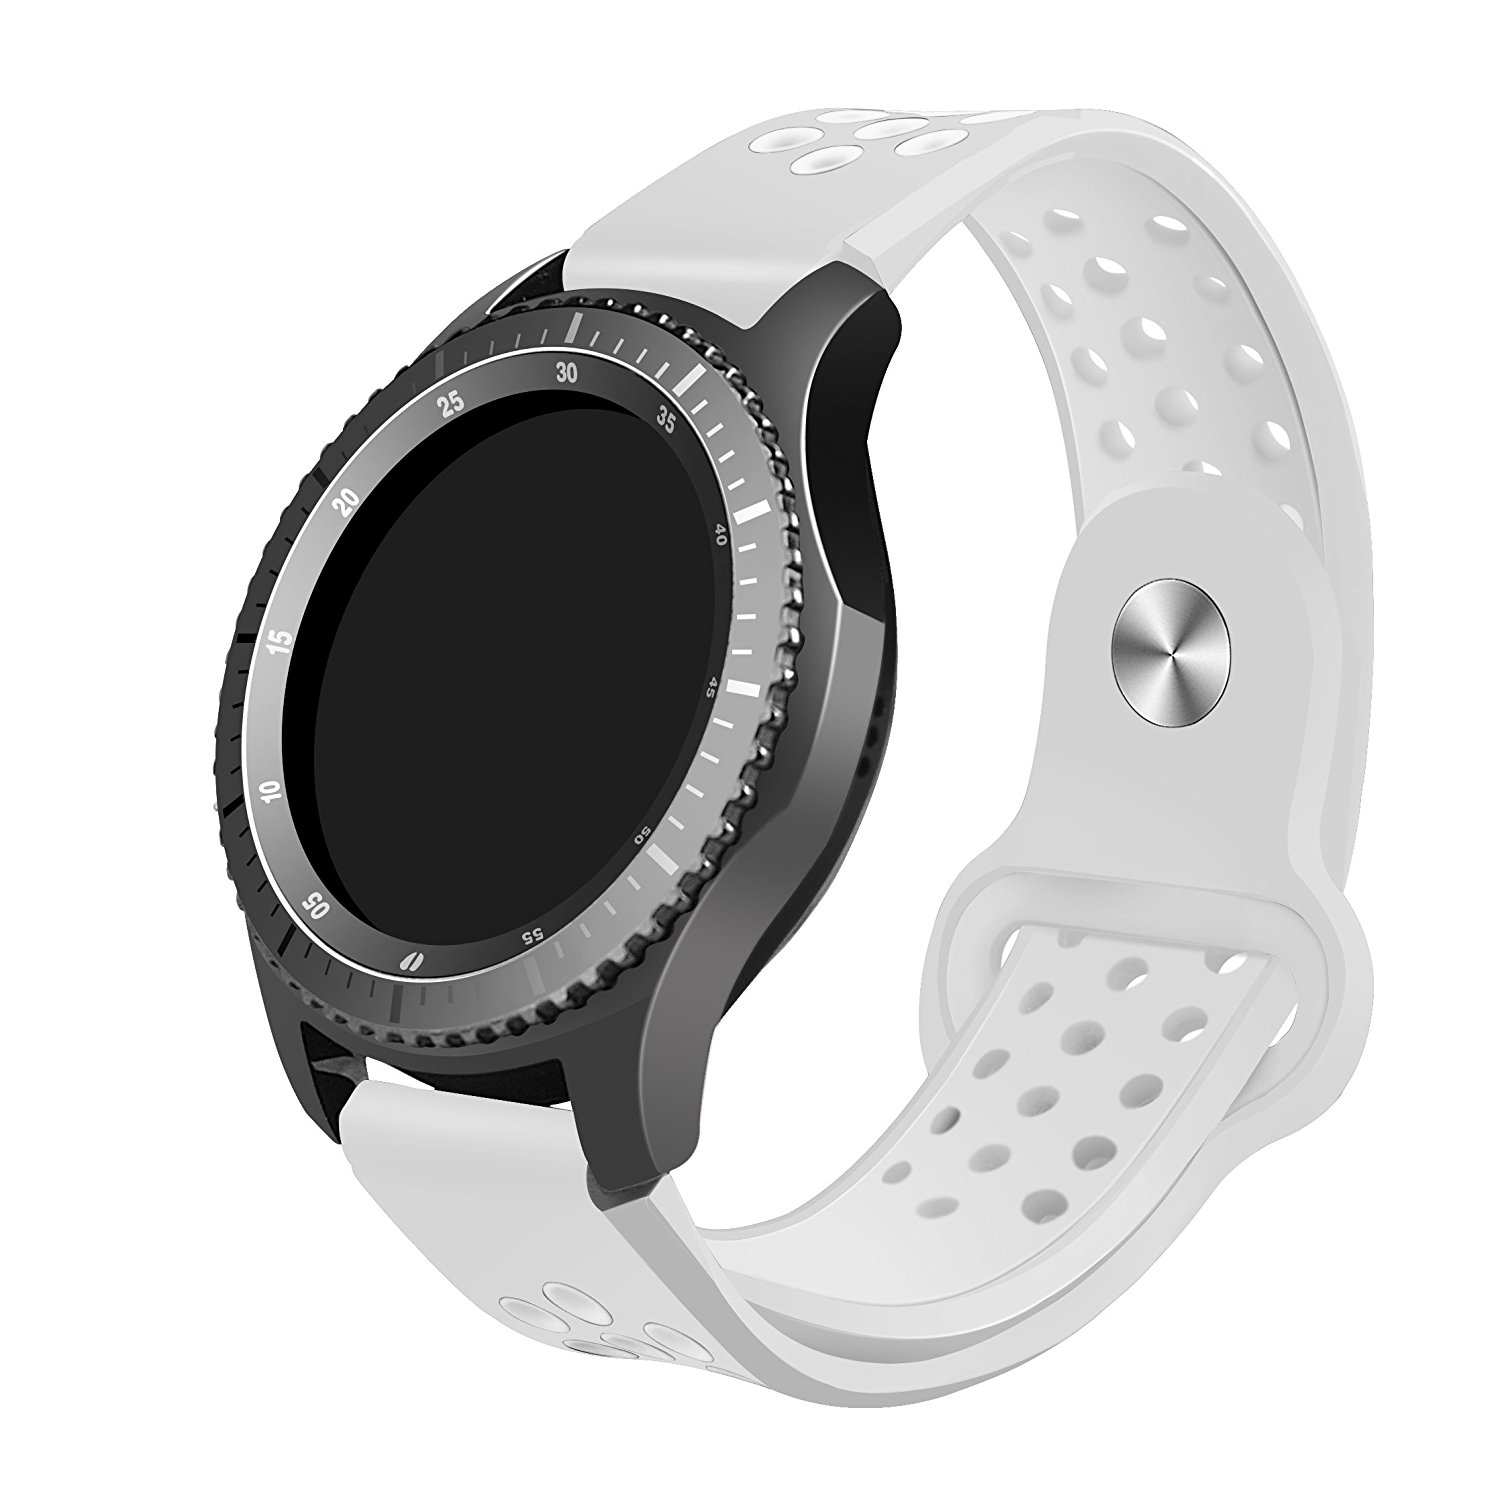 Samsung Gear S3 Band, Kutop Soft Silicone Band Replacement Sport Strap for Gear S3 Frontier and Gear S3 Classic for Man and Woman Accessories